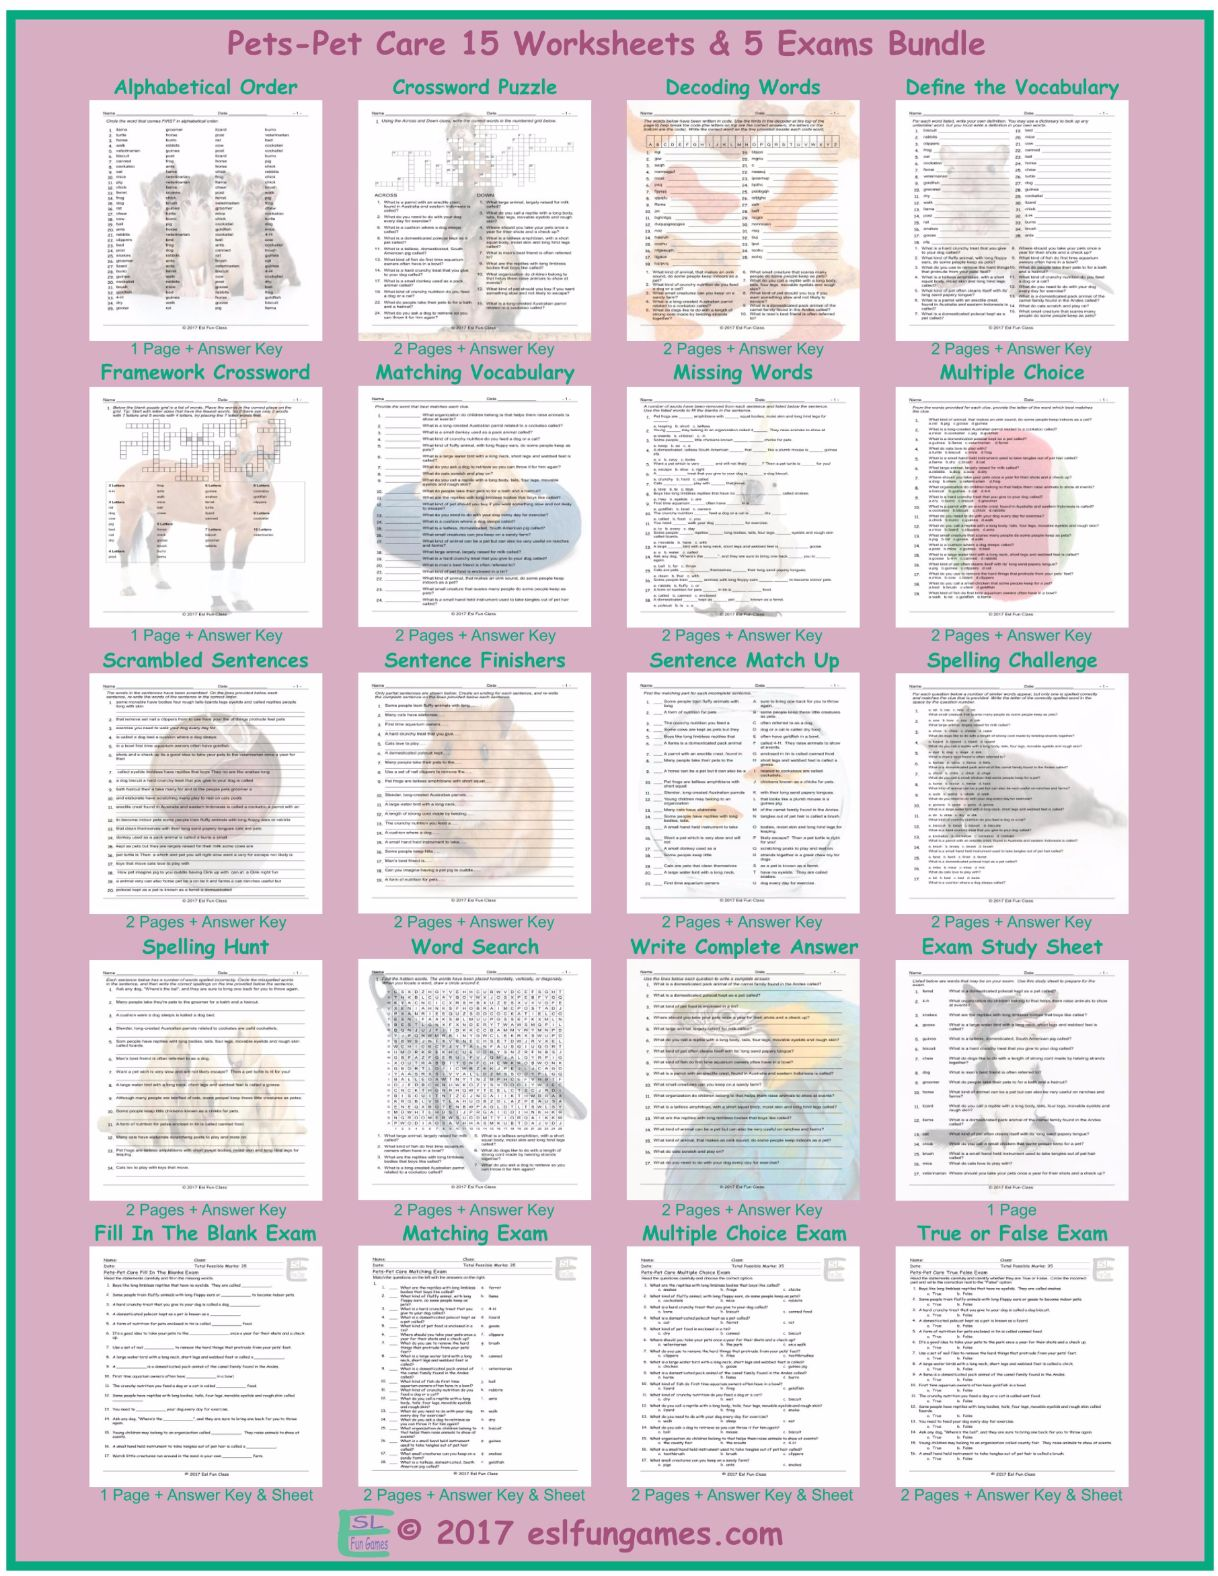 Pets Pet Care 20 Worksheet And Exam Bundle By Eslfungames